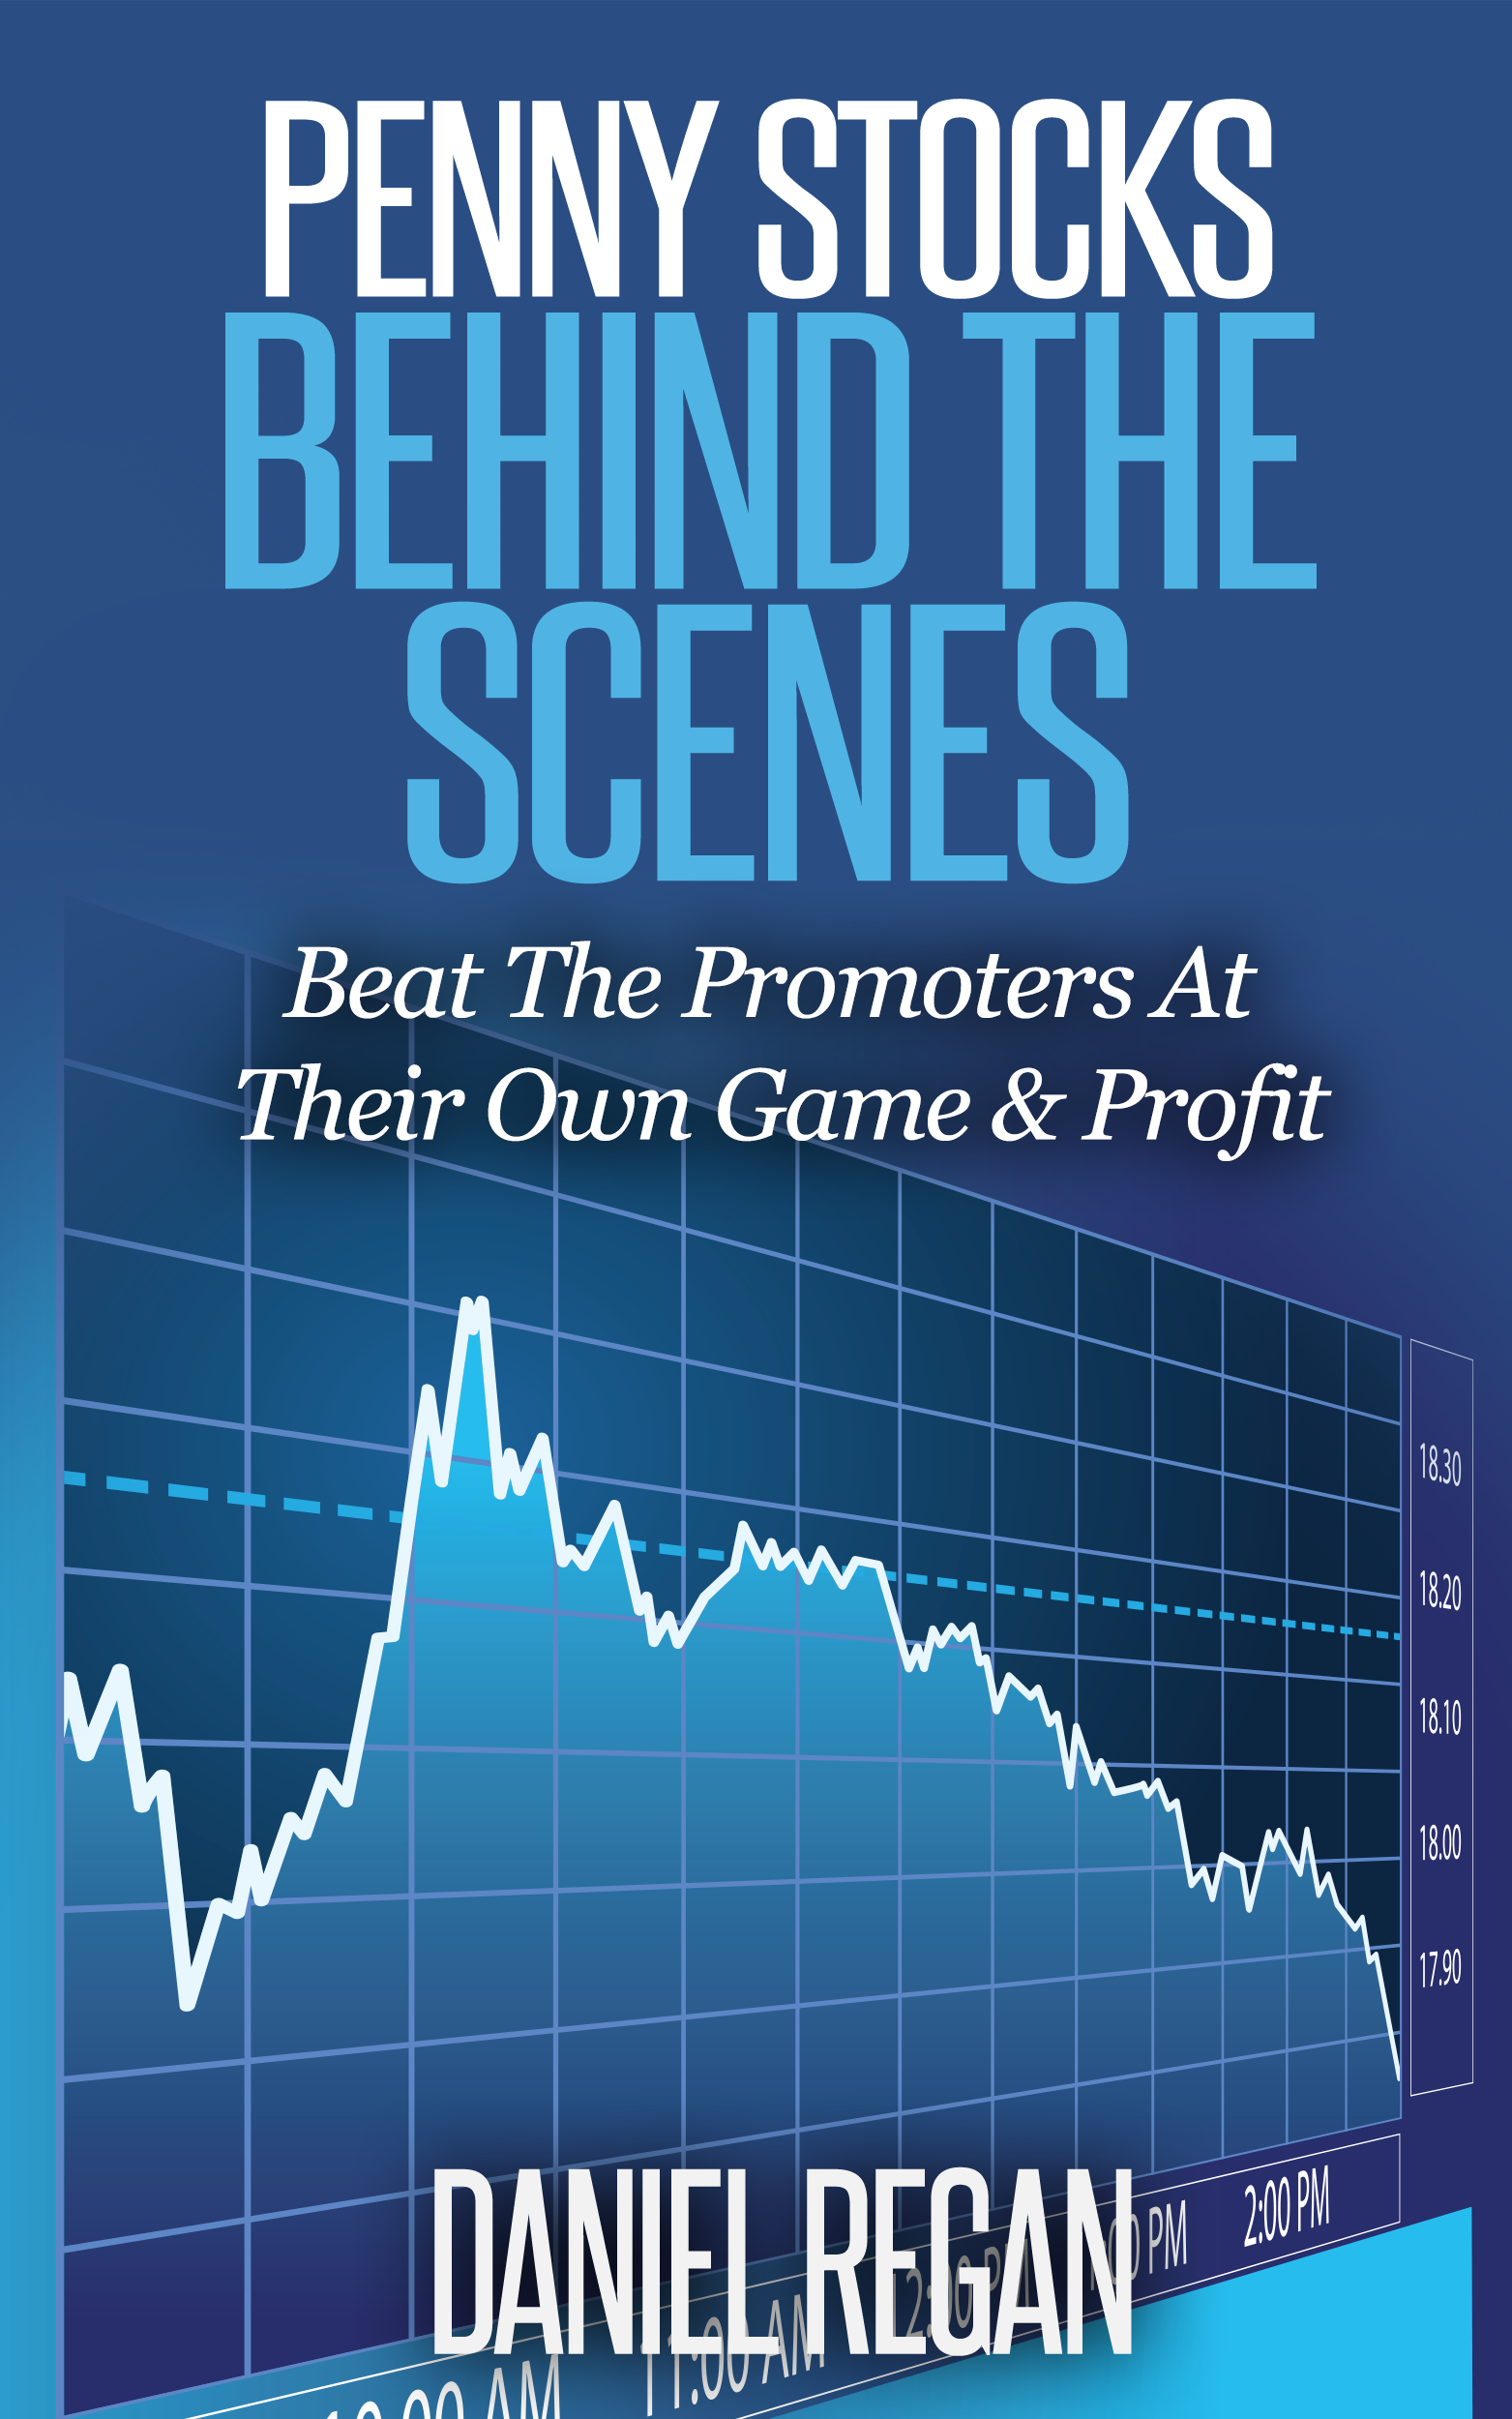 Penny Stocks Behind The Scenes: Beat The Promoters At Their Own Game &  Profit, an Ebook by Daniel Regan